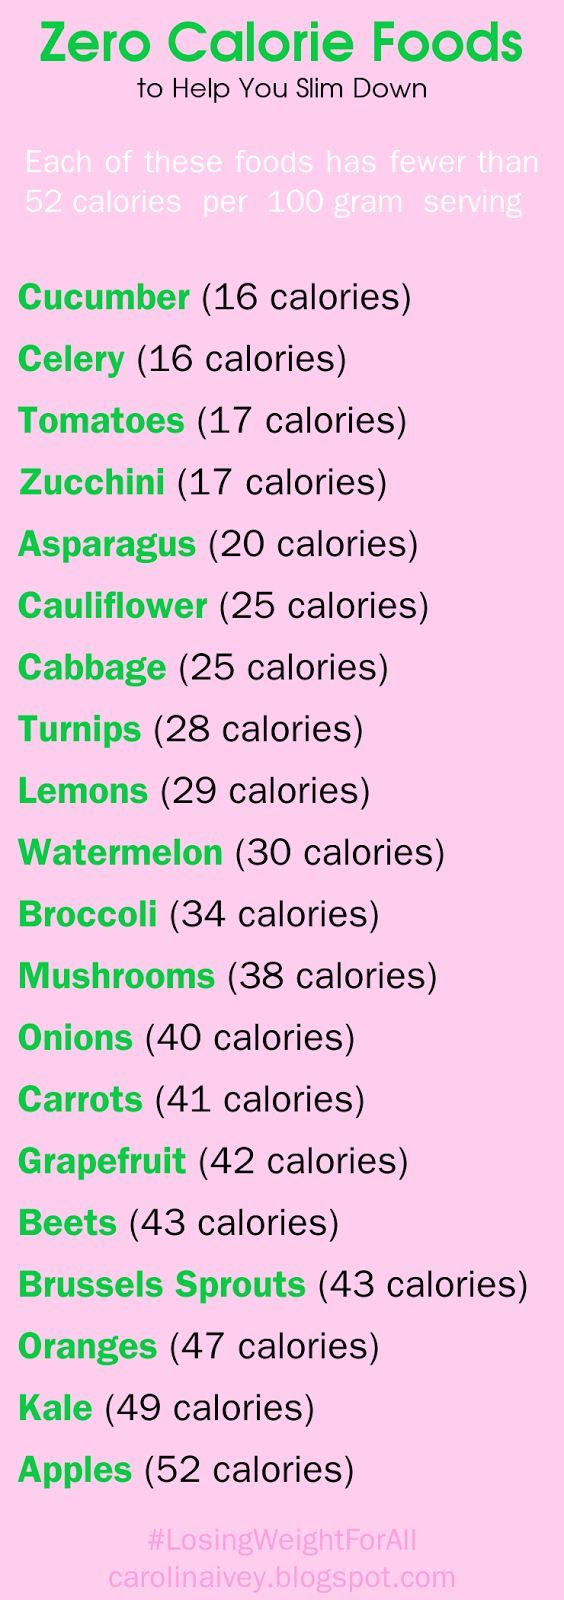 See more here ► https://www.youtube.com/watch?v=ITkJDrQsNKg Tags: weight loss pills without exercise, how to lose weight without dieting and exercising, how can i lose weight without exercising - 20 Zero Calorie Foods.| Posted By: advancedweightlosstips.com |